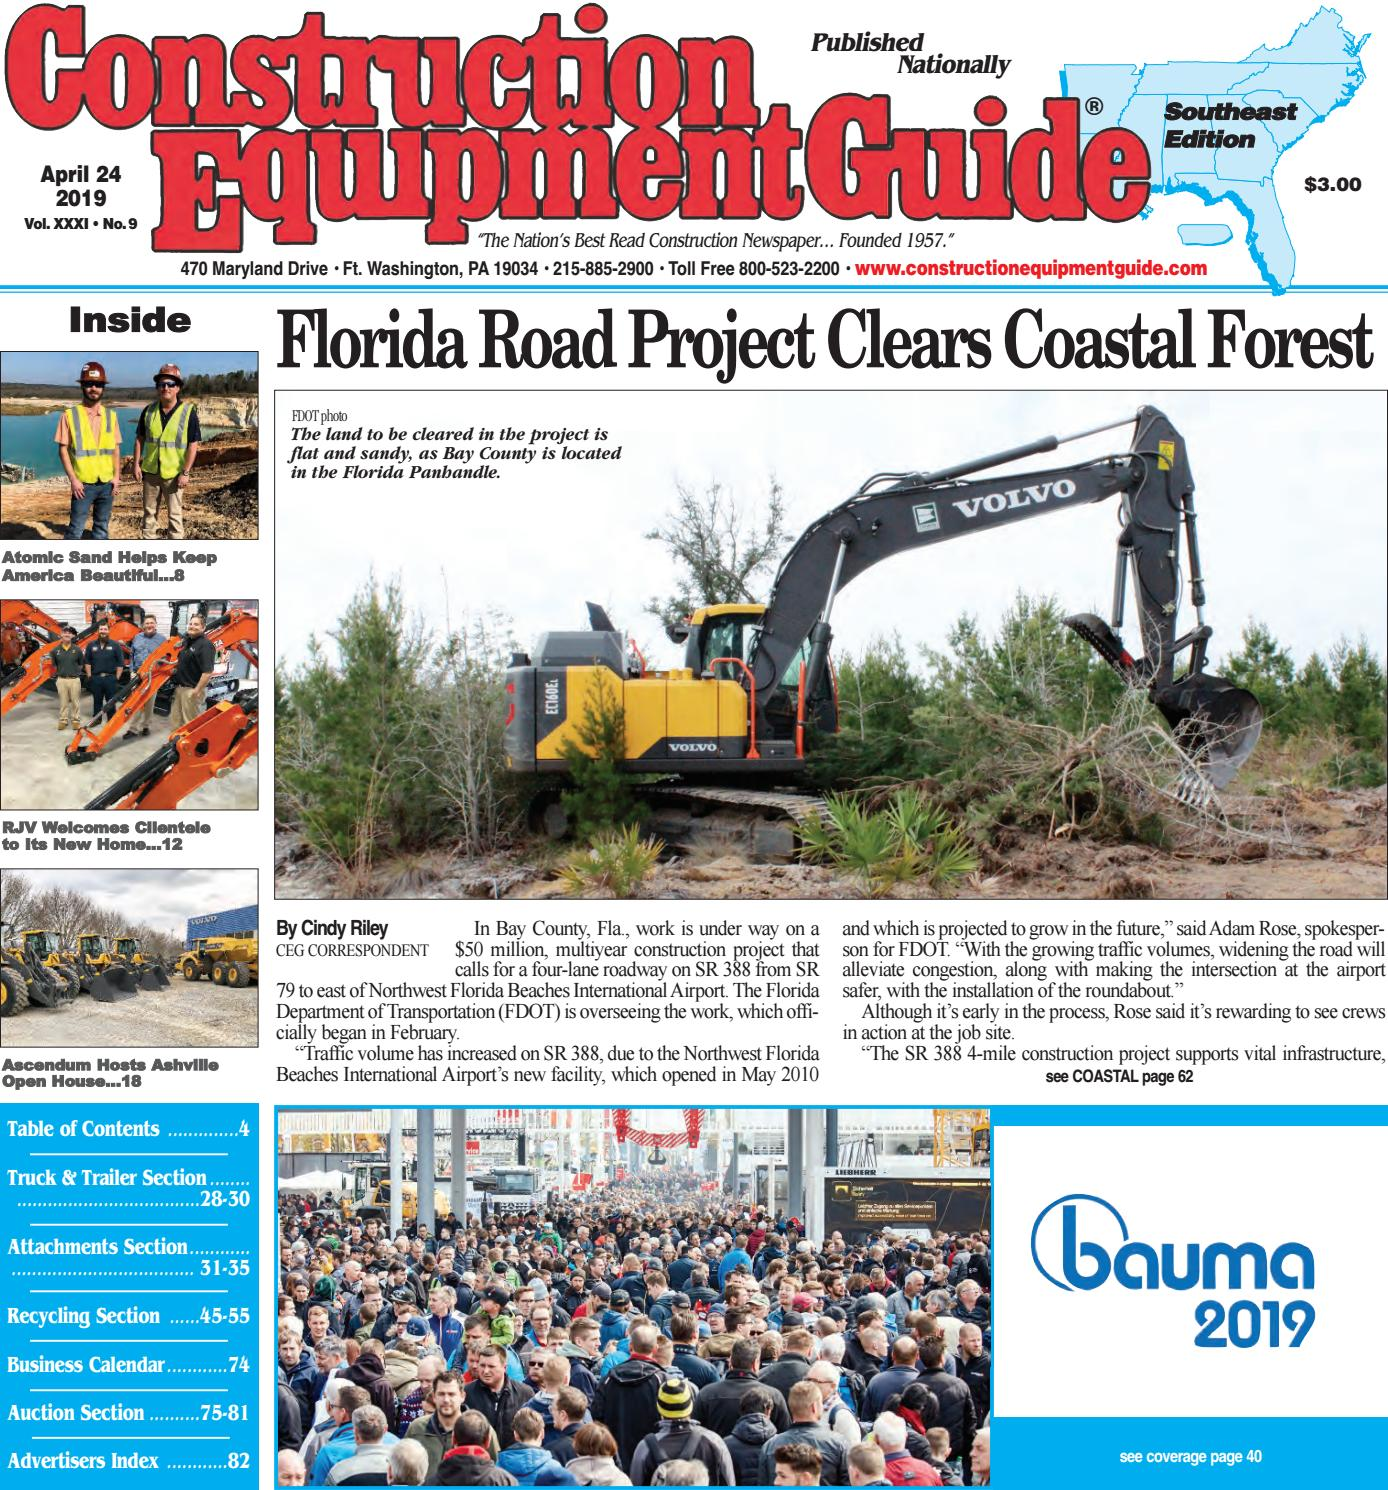 Southeast 9, April 24, 2019 by Construction Equipment Guide